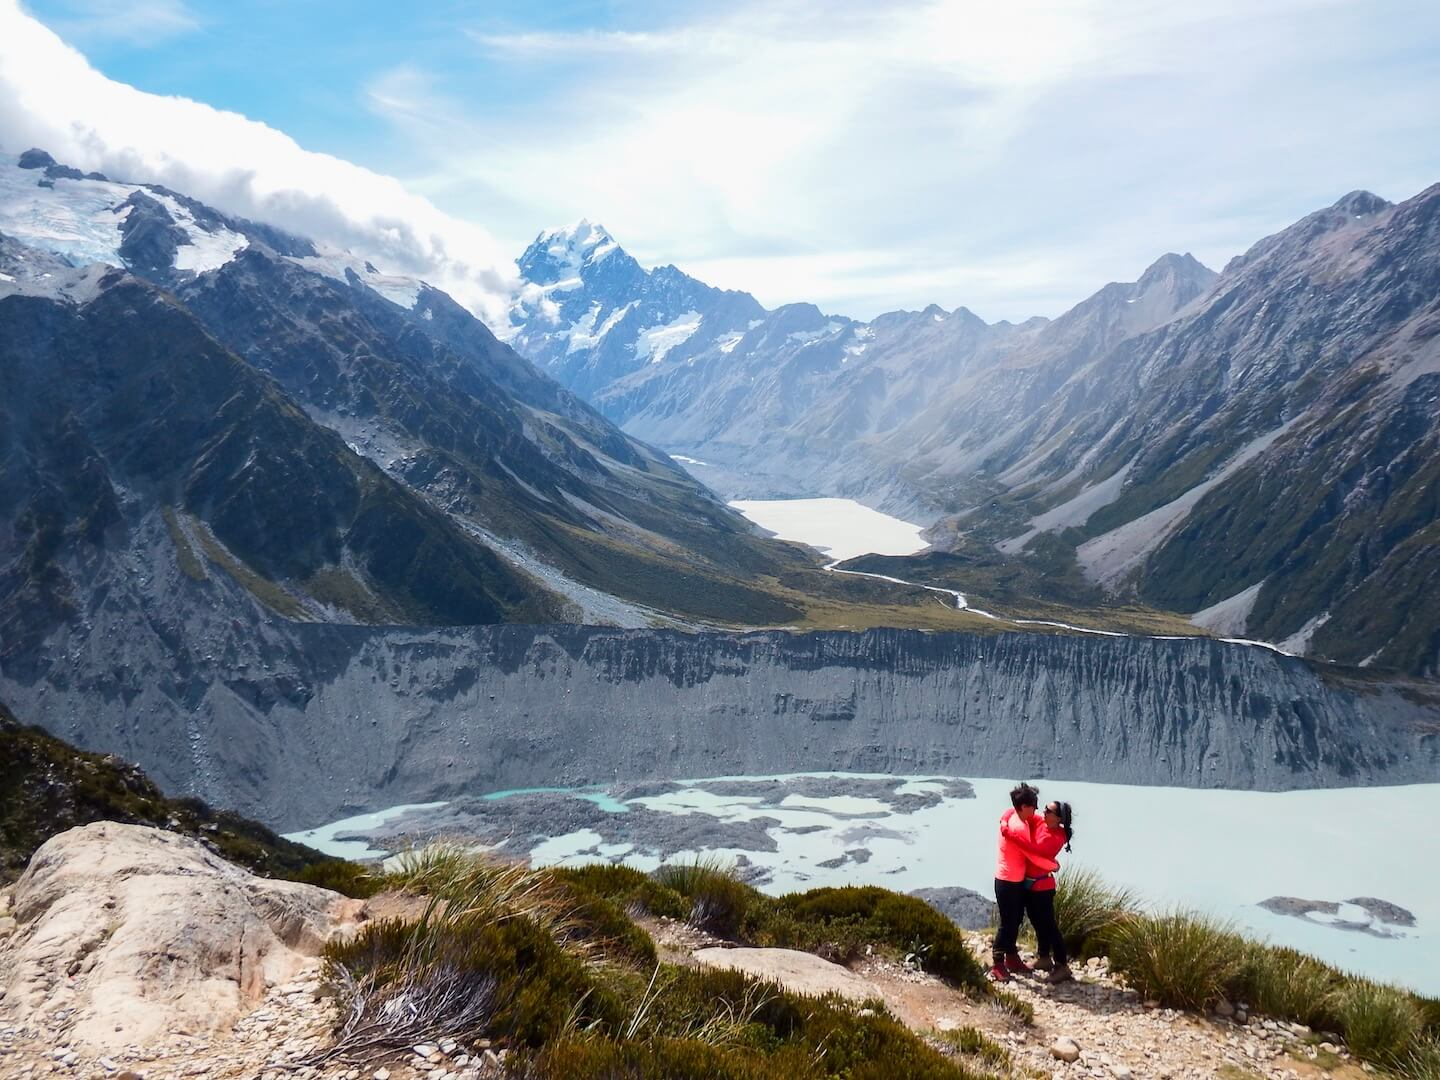 Mount Cook, New Zealand Hiking Guide | Moon & Honey Travel